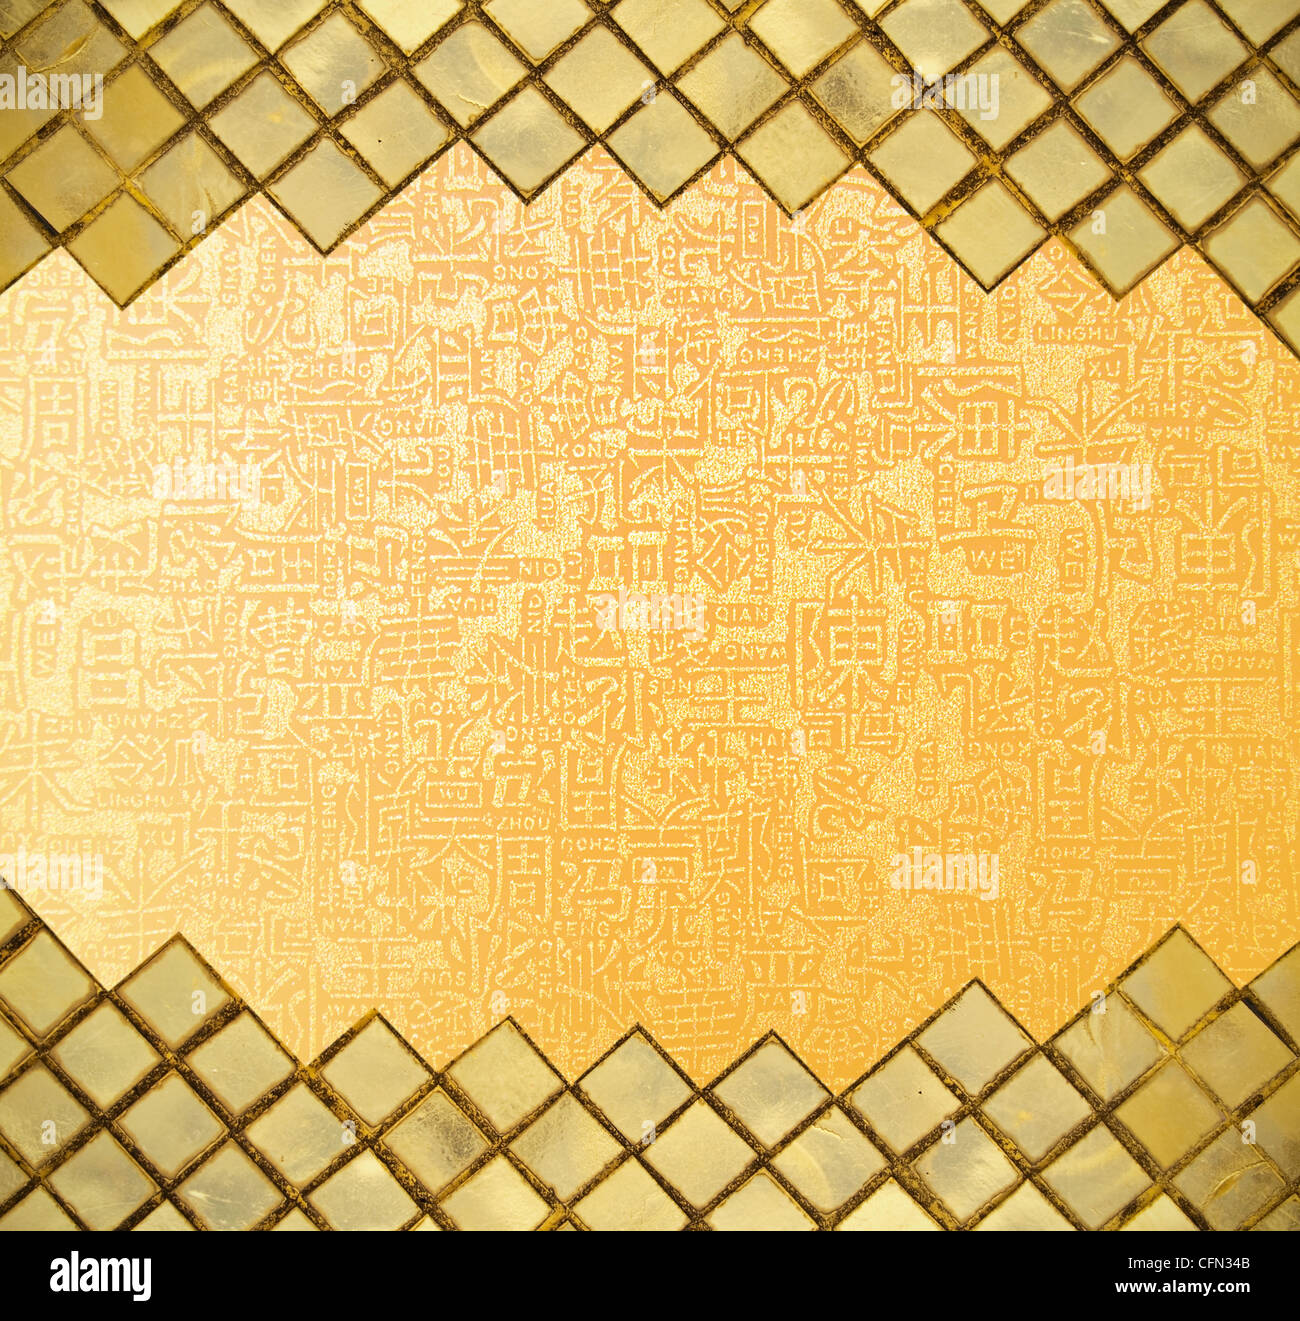 Golden mosaic with chinese letters Stock Photo: 44104043 - Alamy